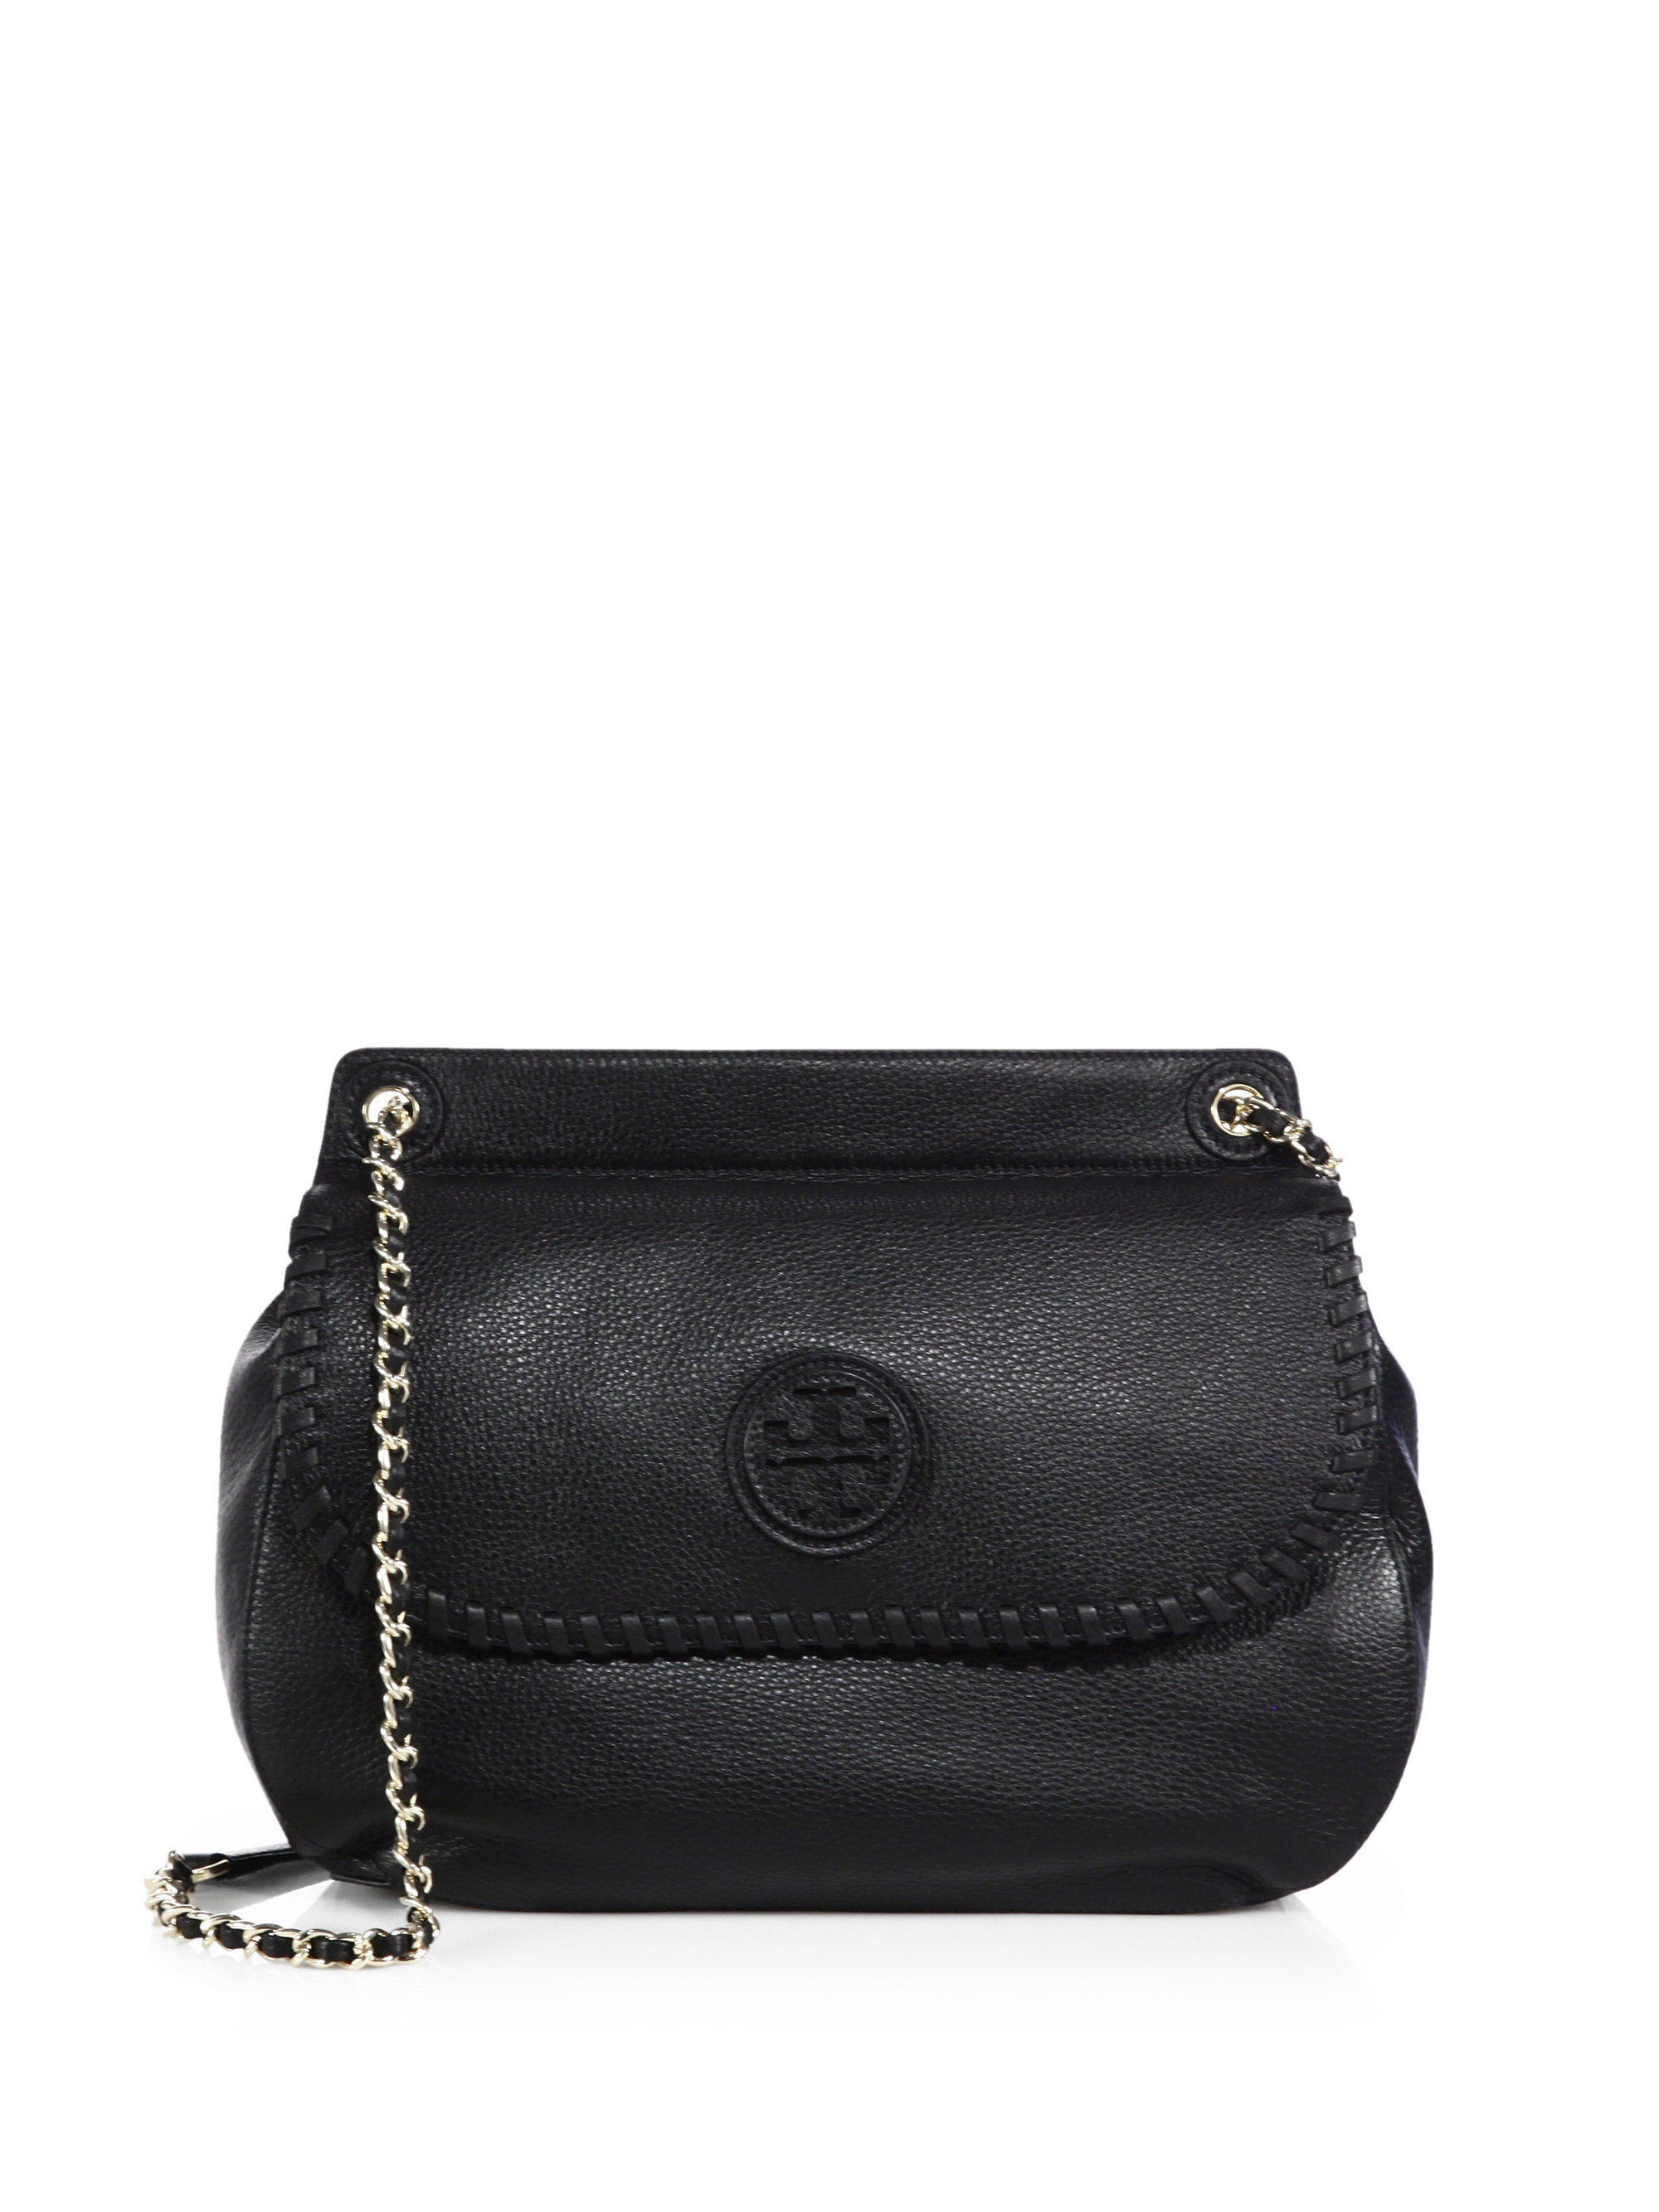 49c41eb3552a Tory Burch Marion Saddle Bag in Black